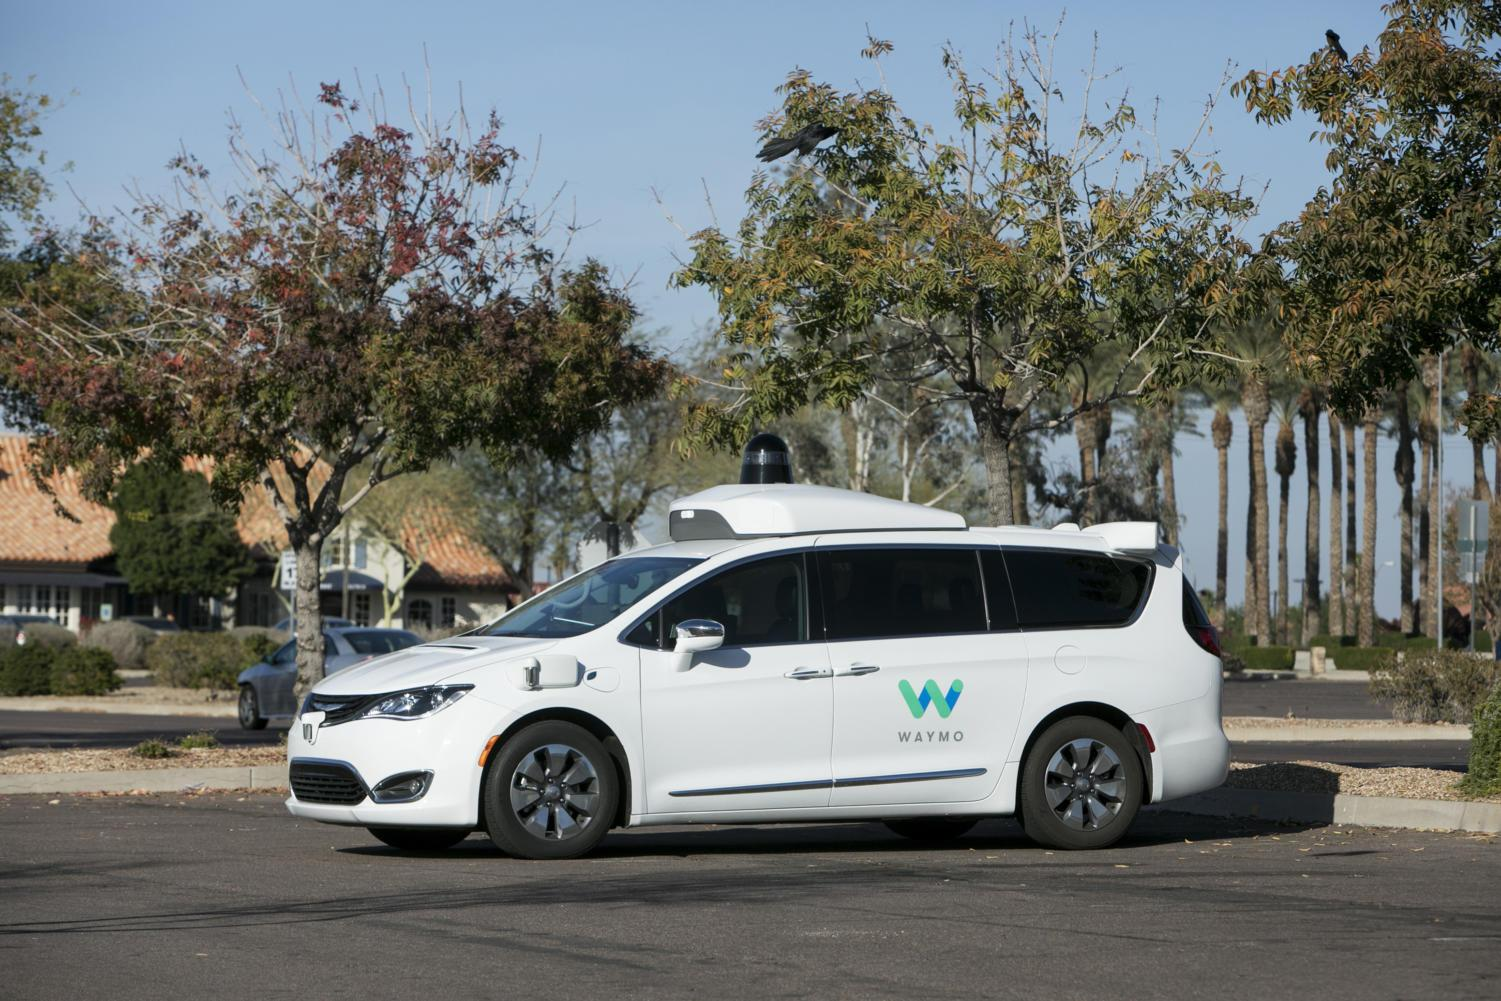 A Waymo self-driving autonomous vehicle in Tempe, Ariz., on February 3, 2018. (Kristoffer Tripplaar/Sipa USA/TNS)